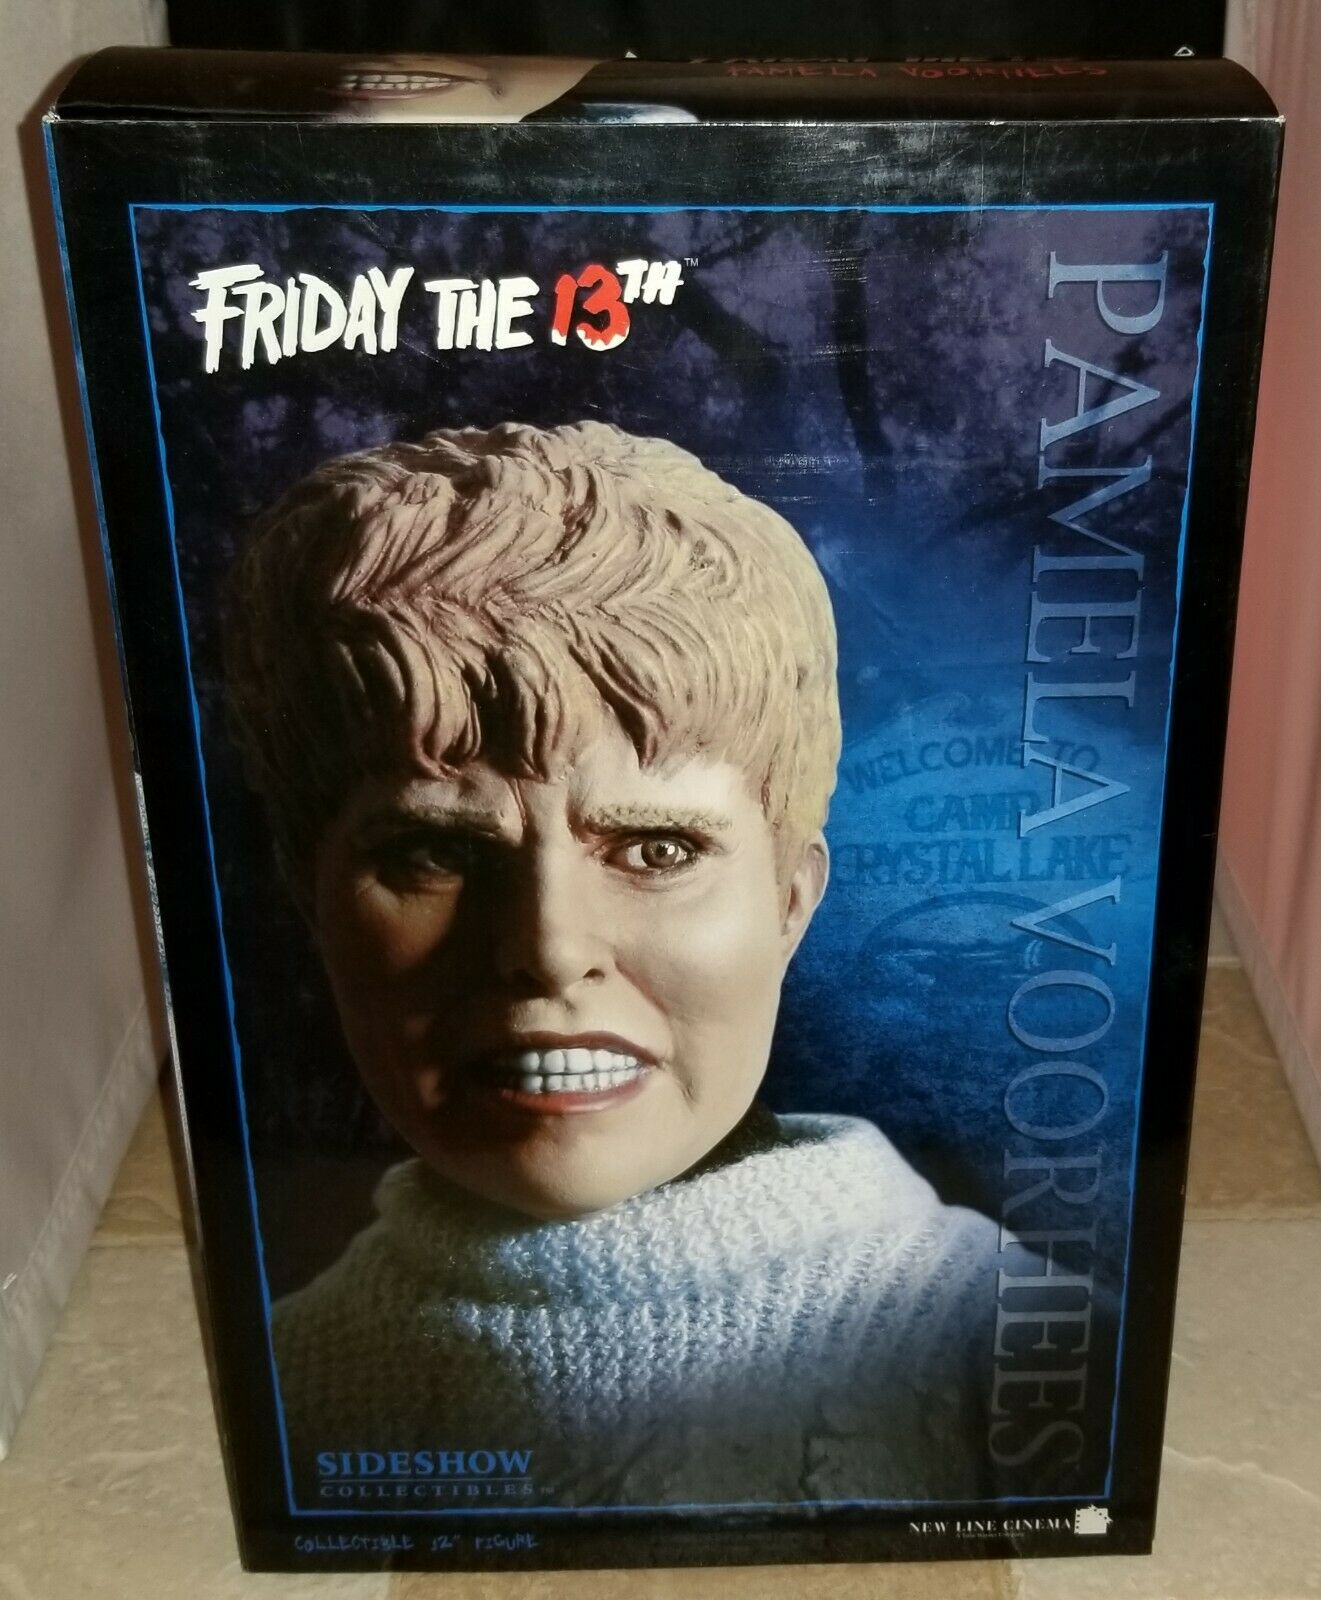 """SIDESHOW PAMELA VOORHEES FRIDAY THE 13th 12"""" 1:6 EXCLUSIVE FIGURE W/ HEAD NEW  on eBay thumbnail"""